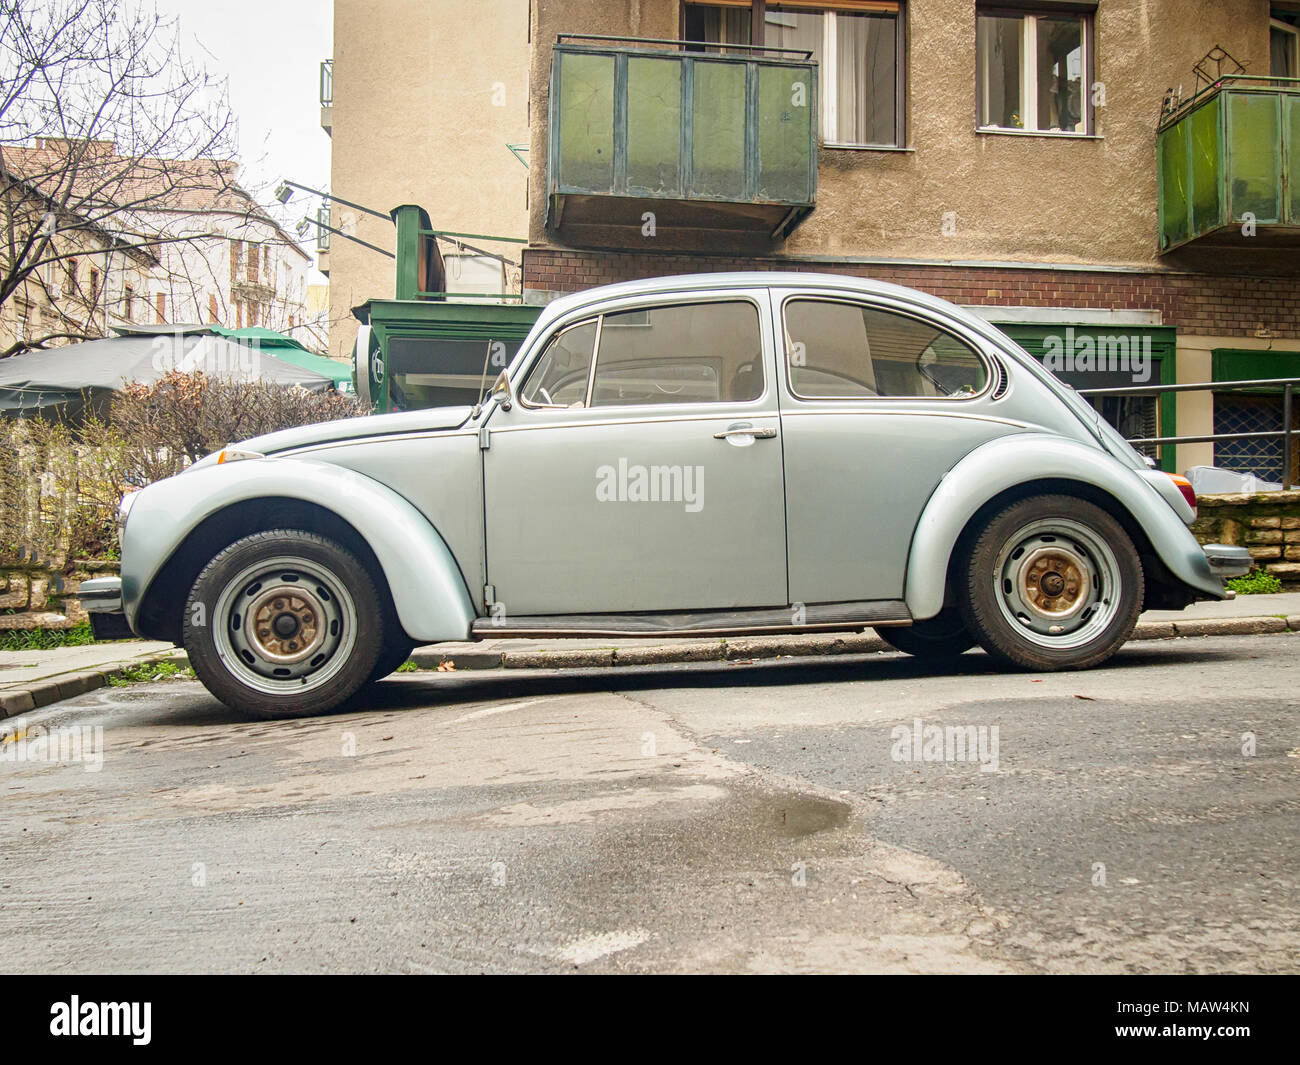 BUDAPEST, HUNGARY-MARCH 31, 2018: Silver Volkswagen Beetle (Type 1) in the city streets - Stock Image